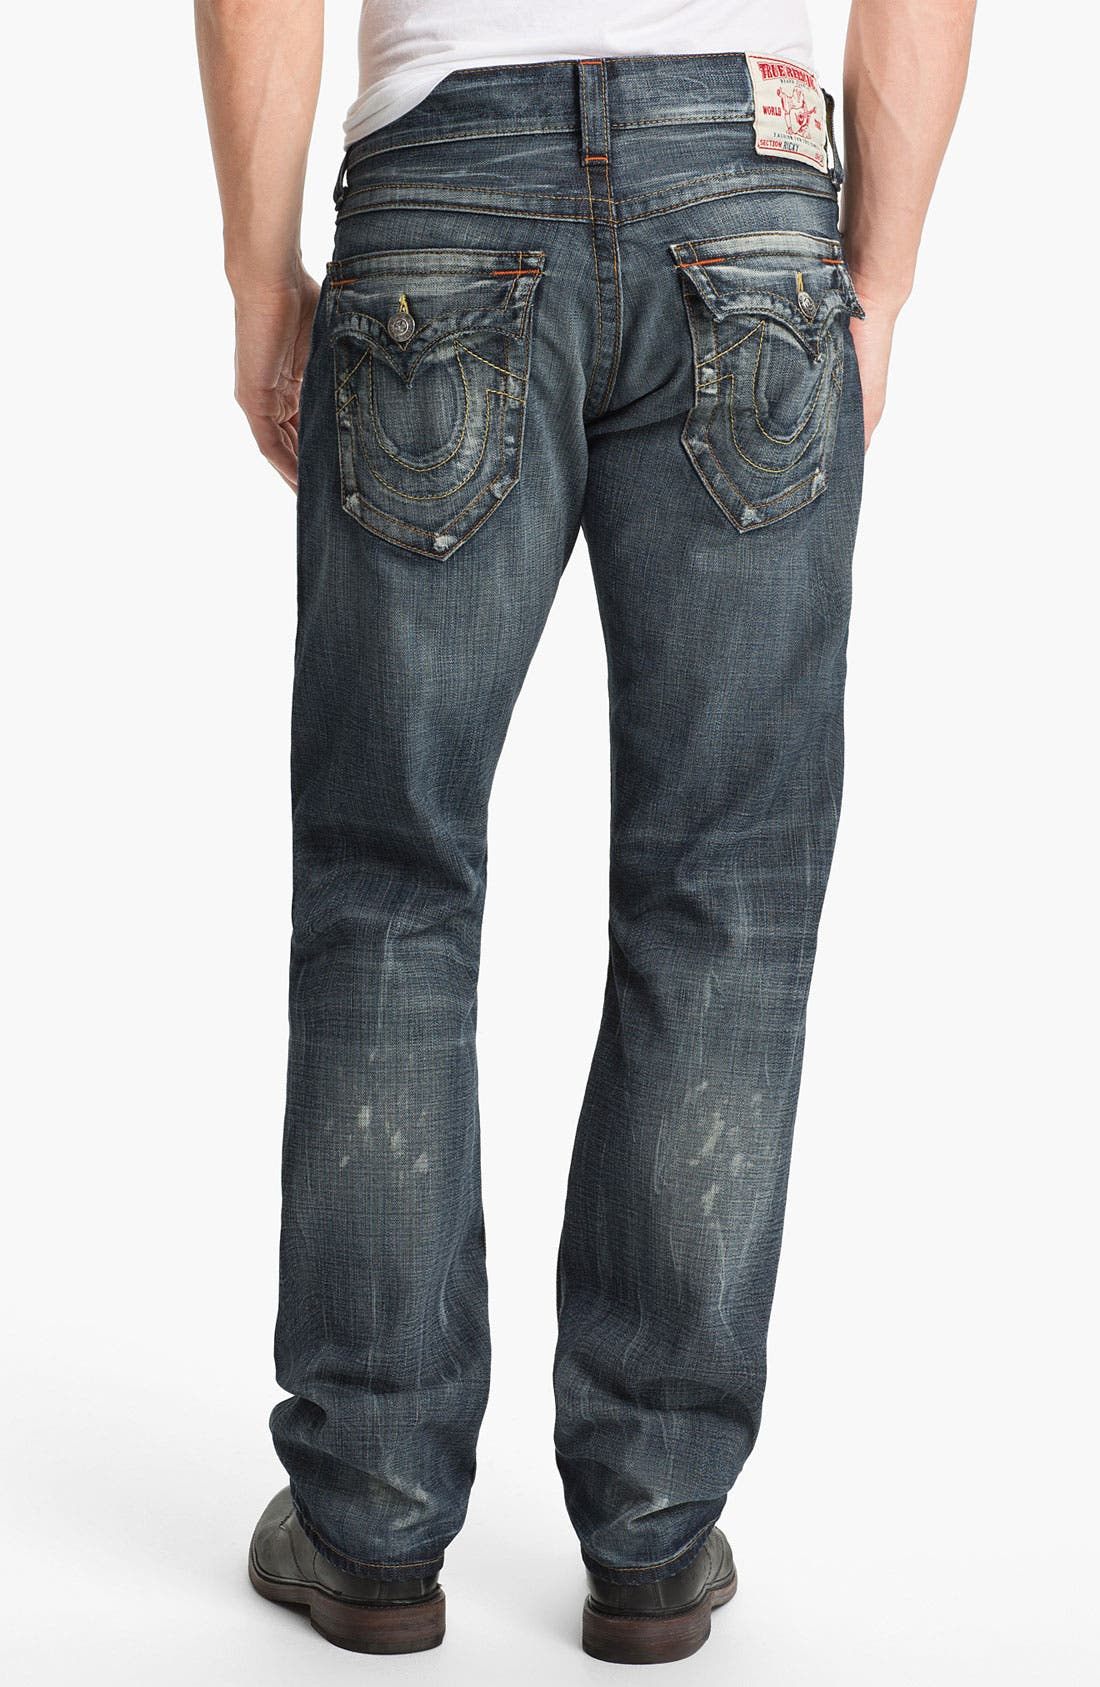 Alternate Image 1 Selected - True Religion Brand Jeans 'Ricky' Straight Leg Jeans (Granite)